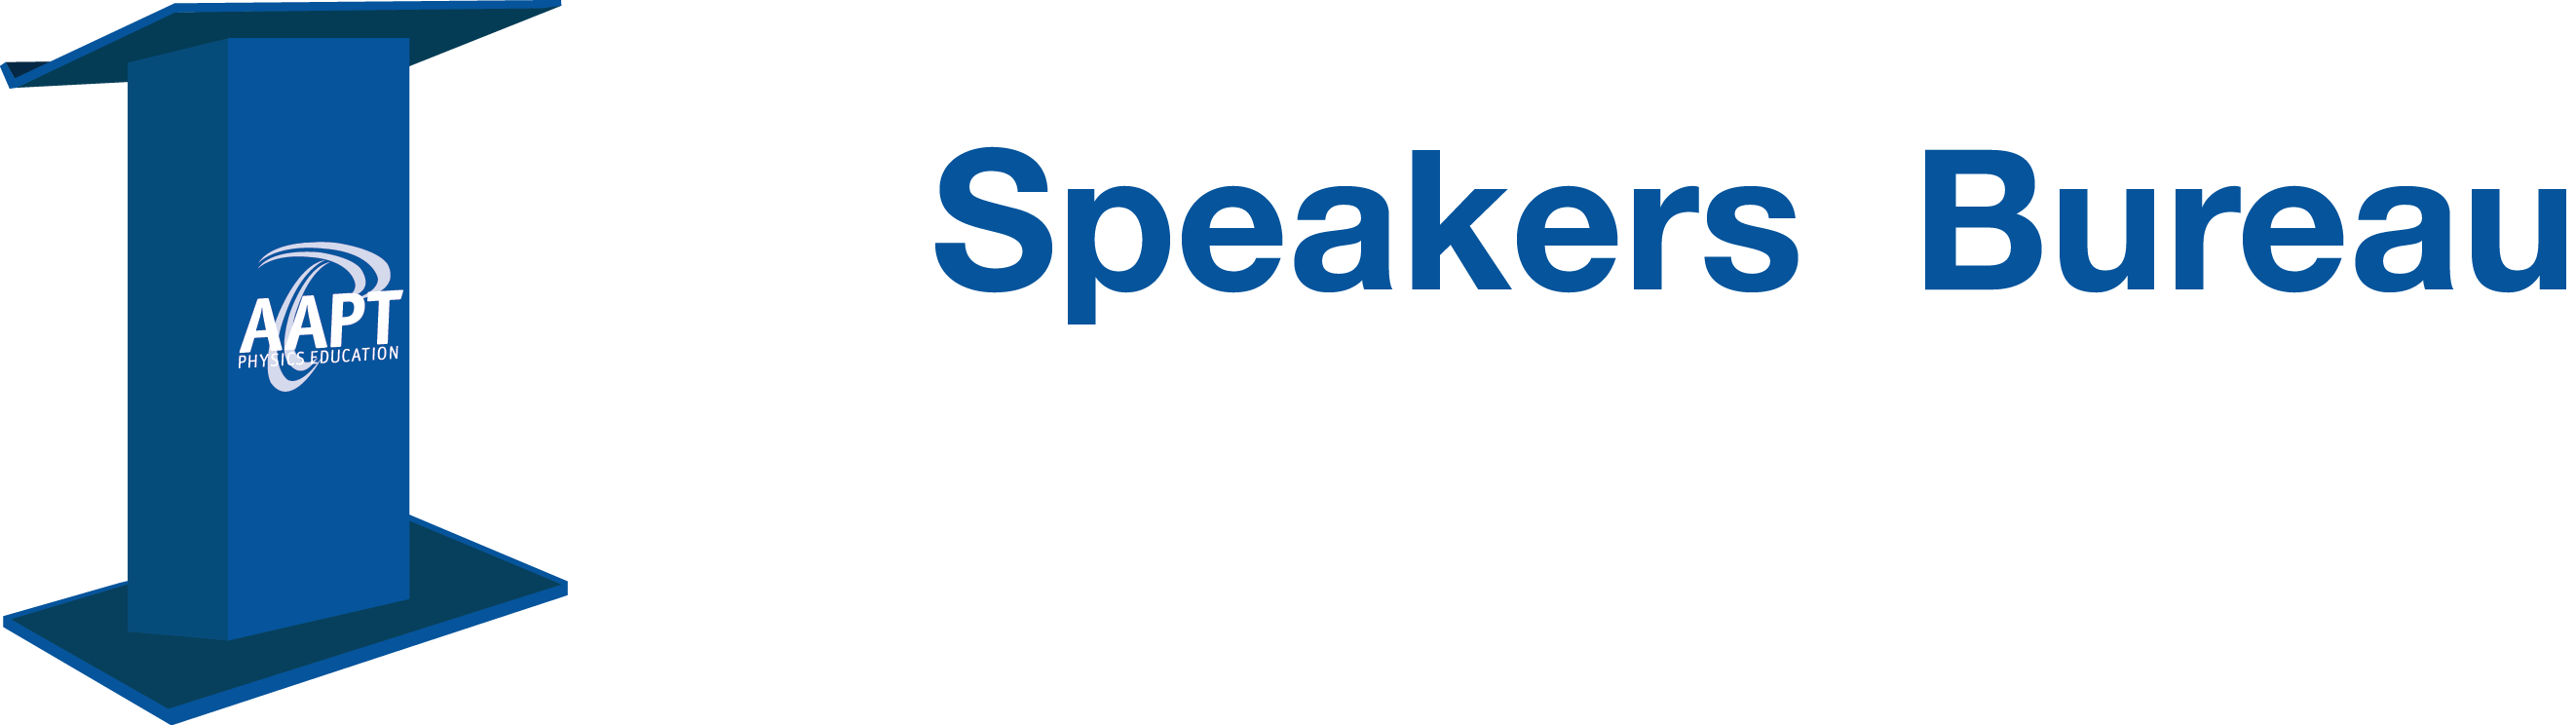 Test Logo for Speaker Bureau